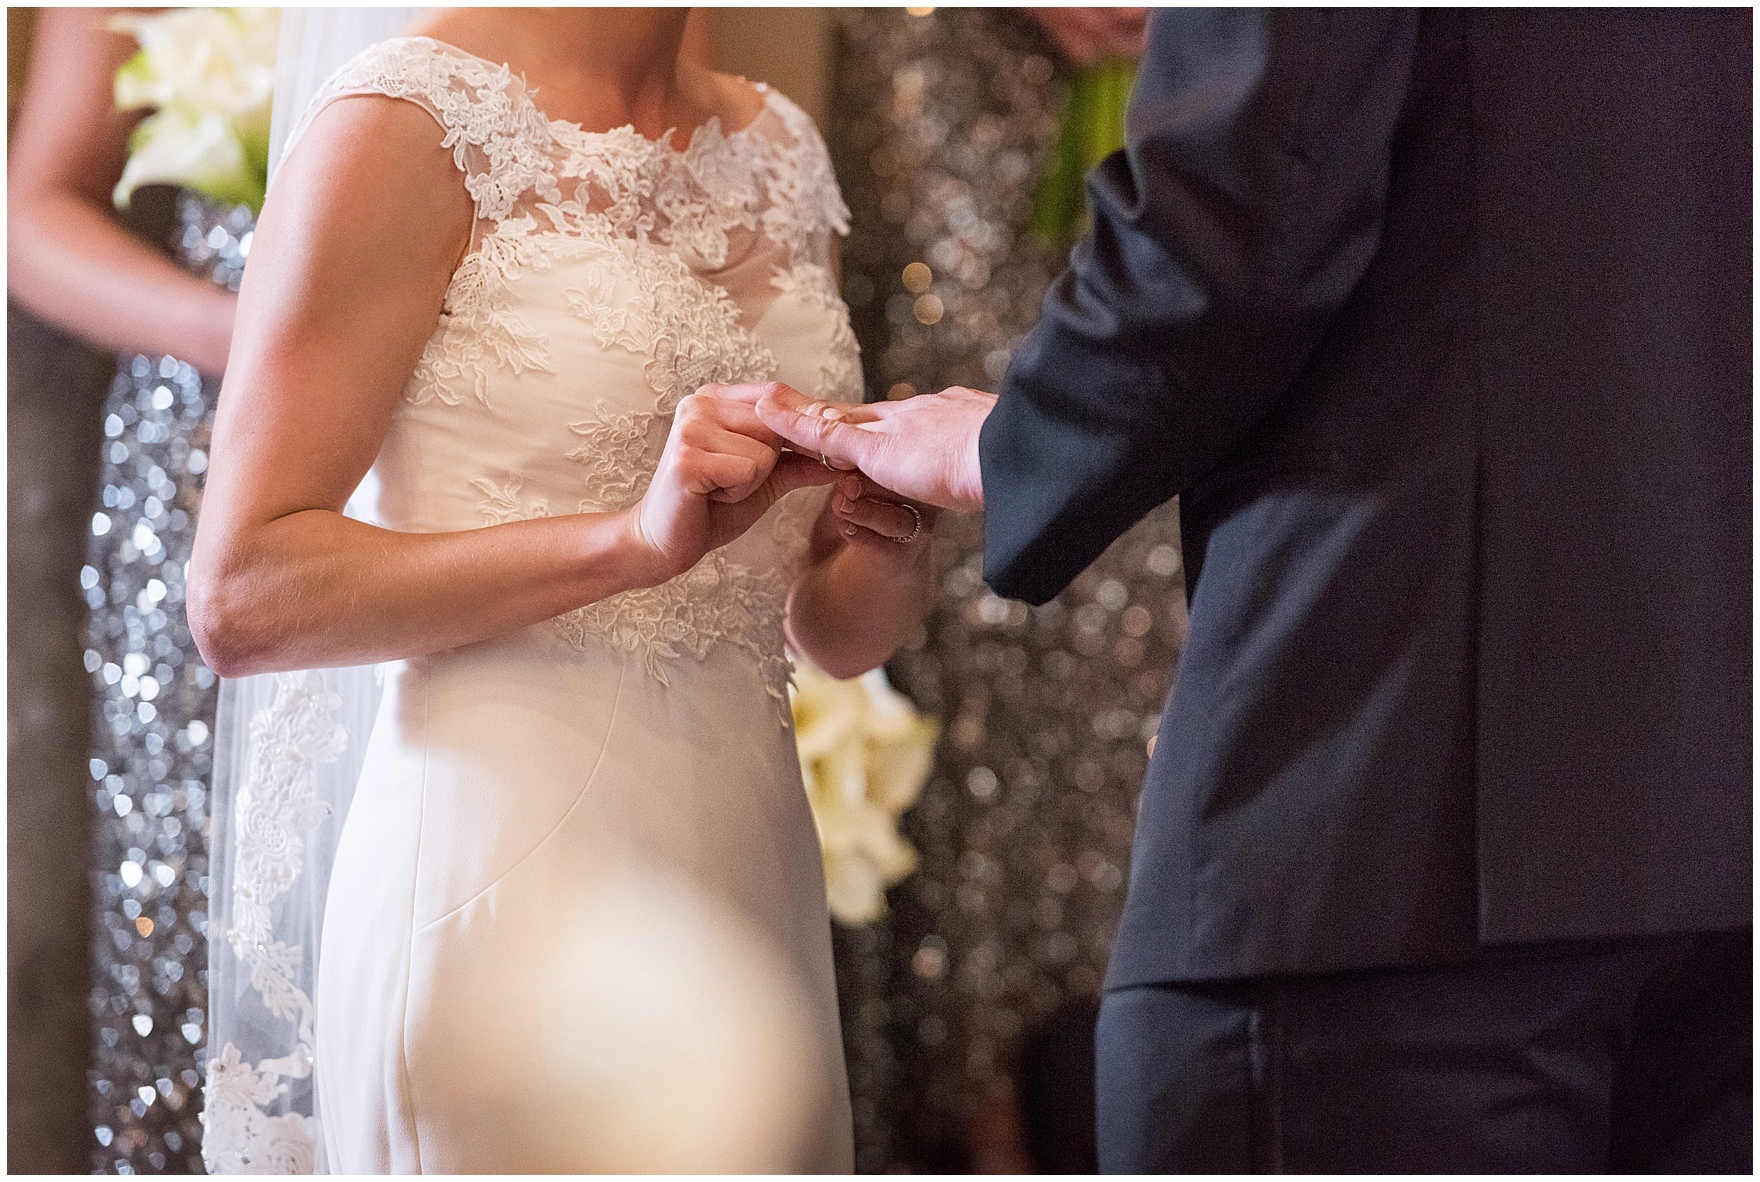 The bride and groom exchange rings during a Newberry Library Chicago wedding.